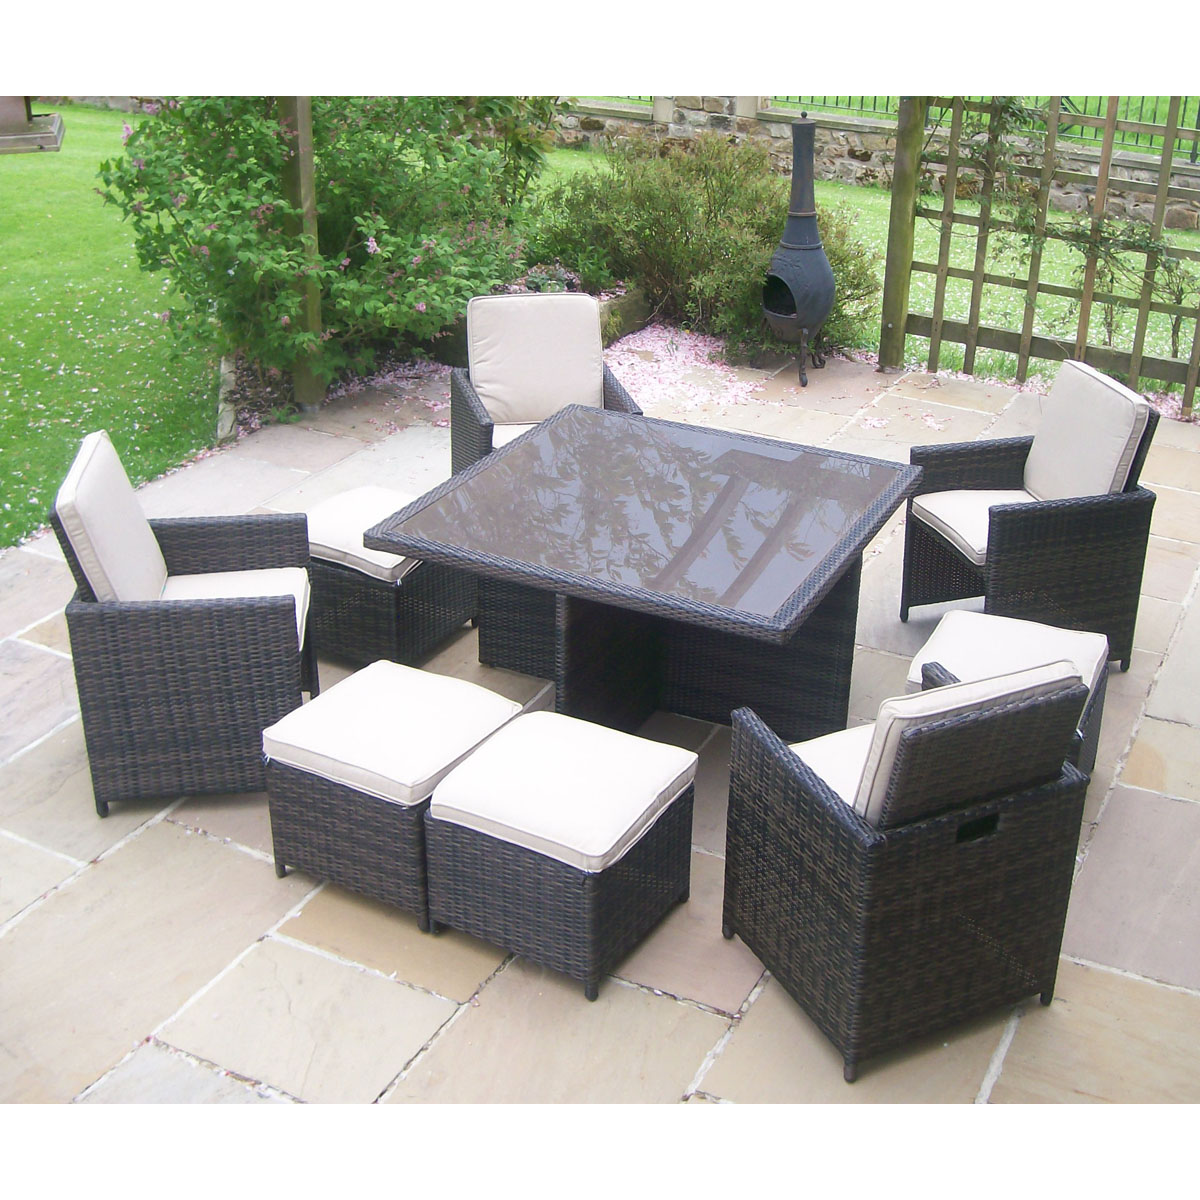 Rattan wicker garden furniture table 4 chair patio set ebay for Outdoor wicker furniture